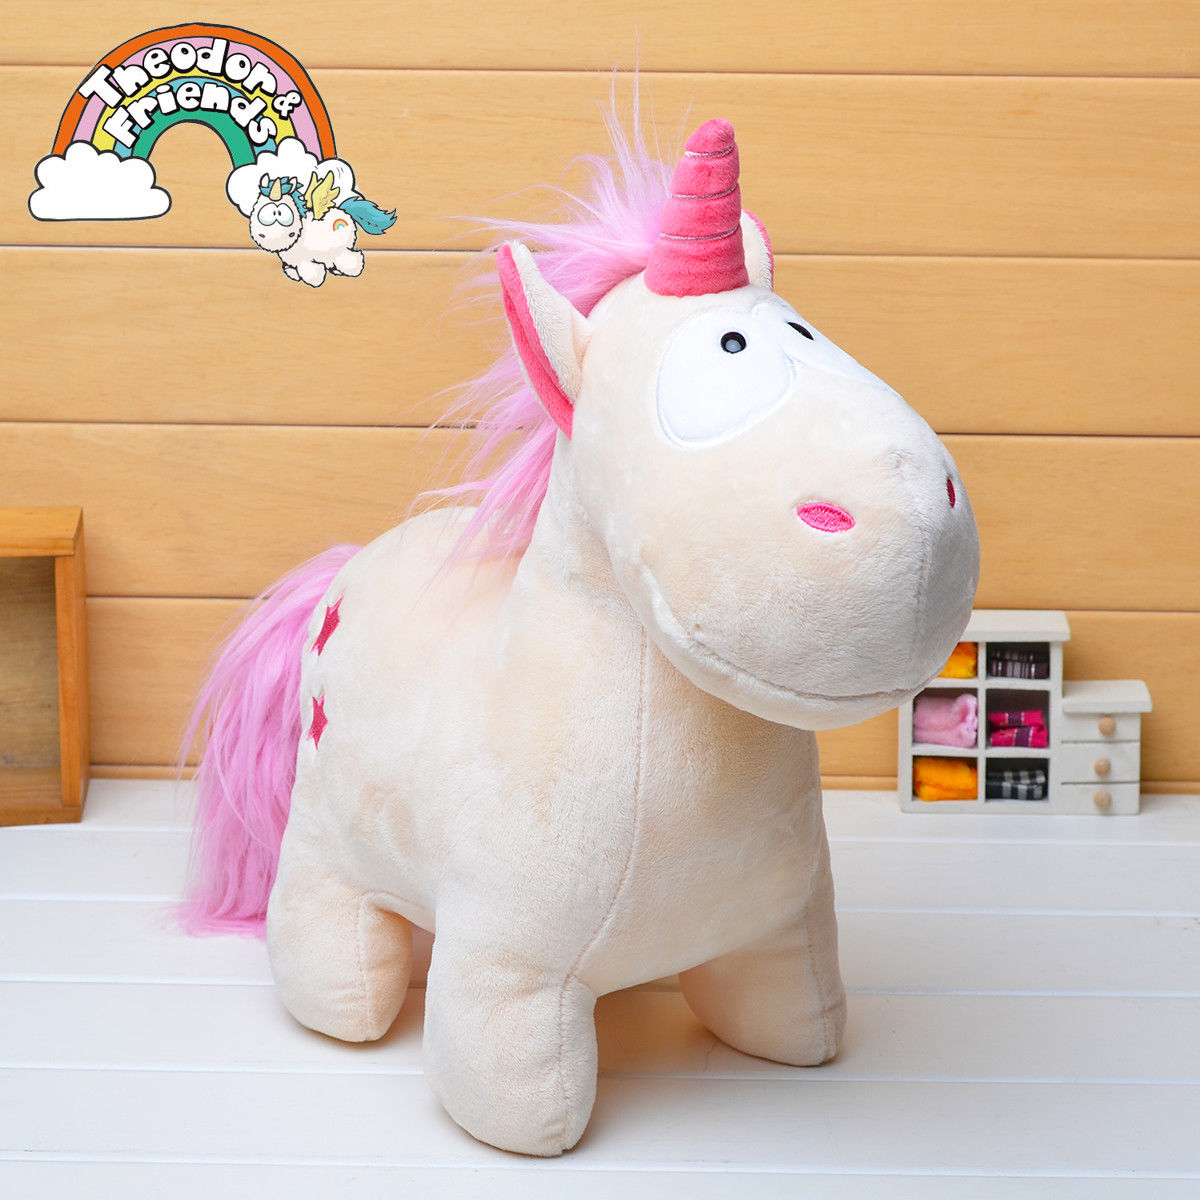 Cute Unicorn Horse Plush Fluffy Stuffed Cotton Lovely Animal Cartoon Doll Toys Kids Gifts New